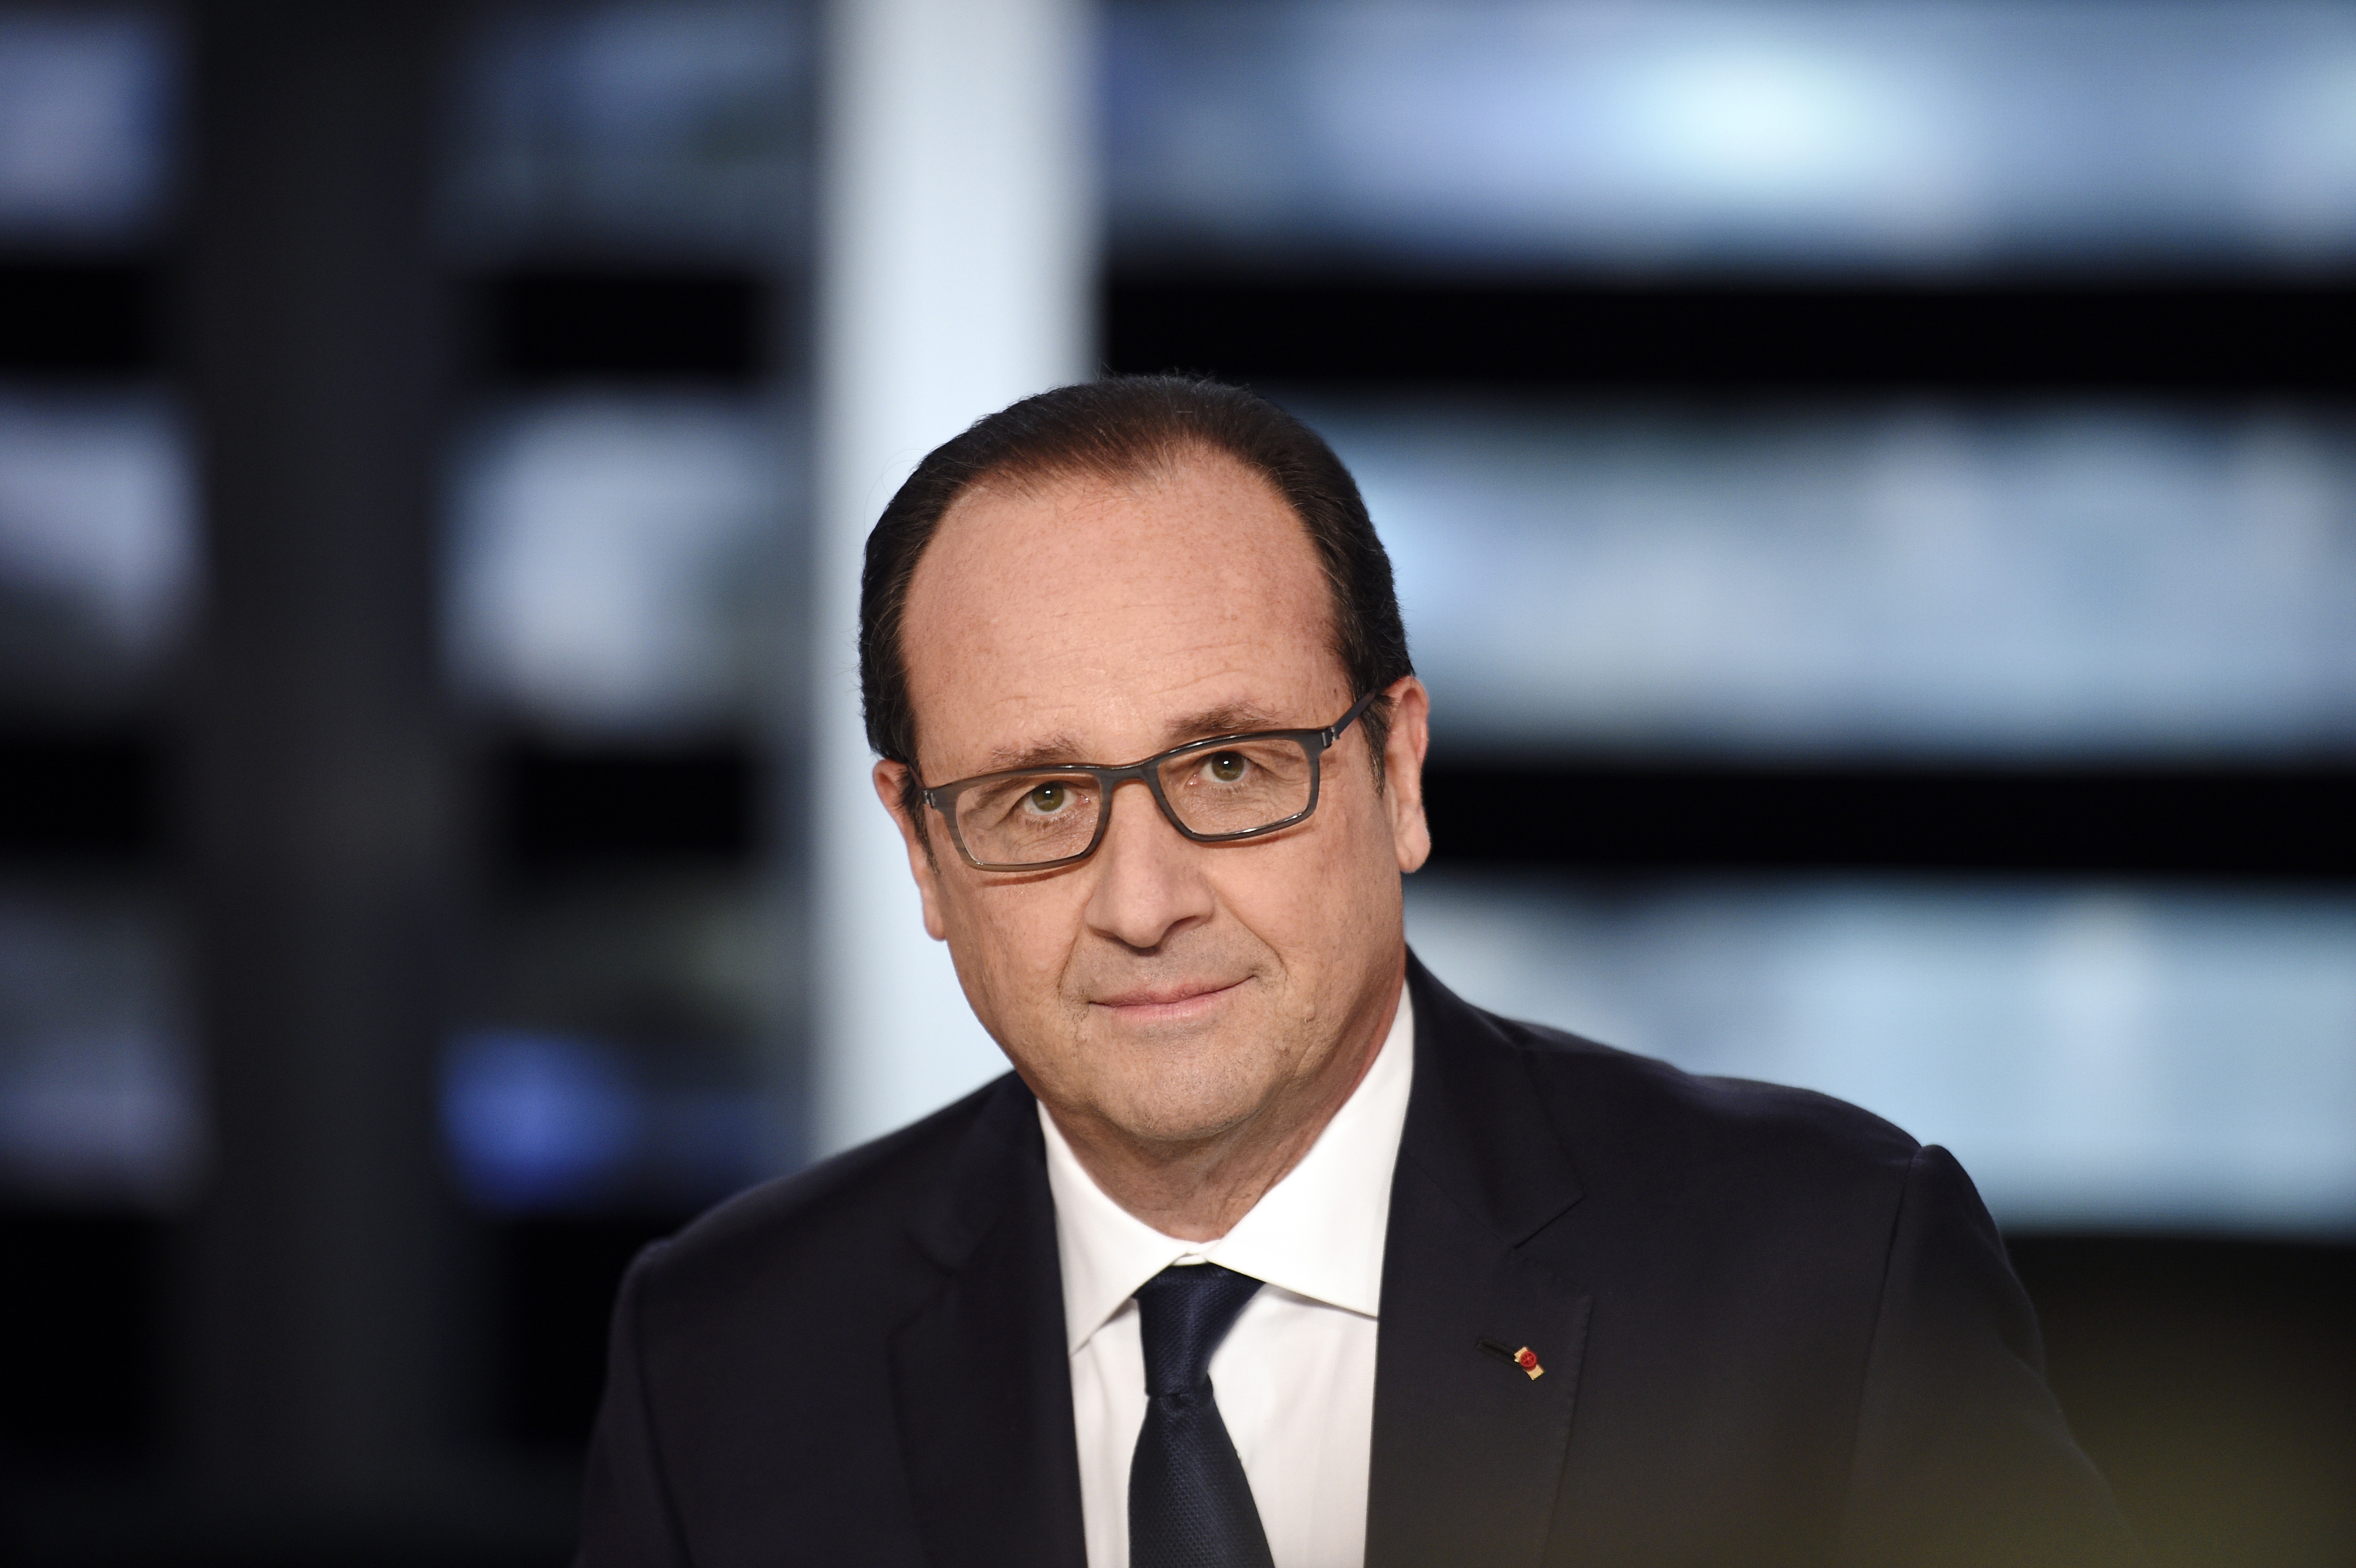 French President François Hollande poses on a TV set prior to the start of a French channel TF1 broadcast show, in Aubervilliers, outside Paris, on Nov. 6, 2014